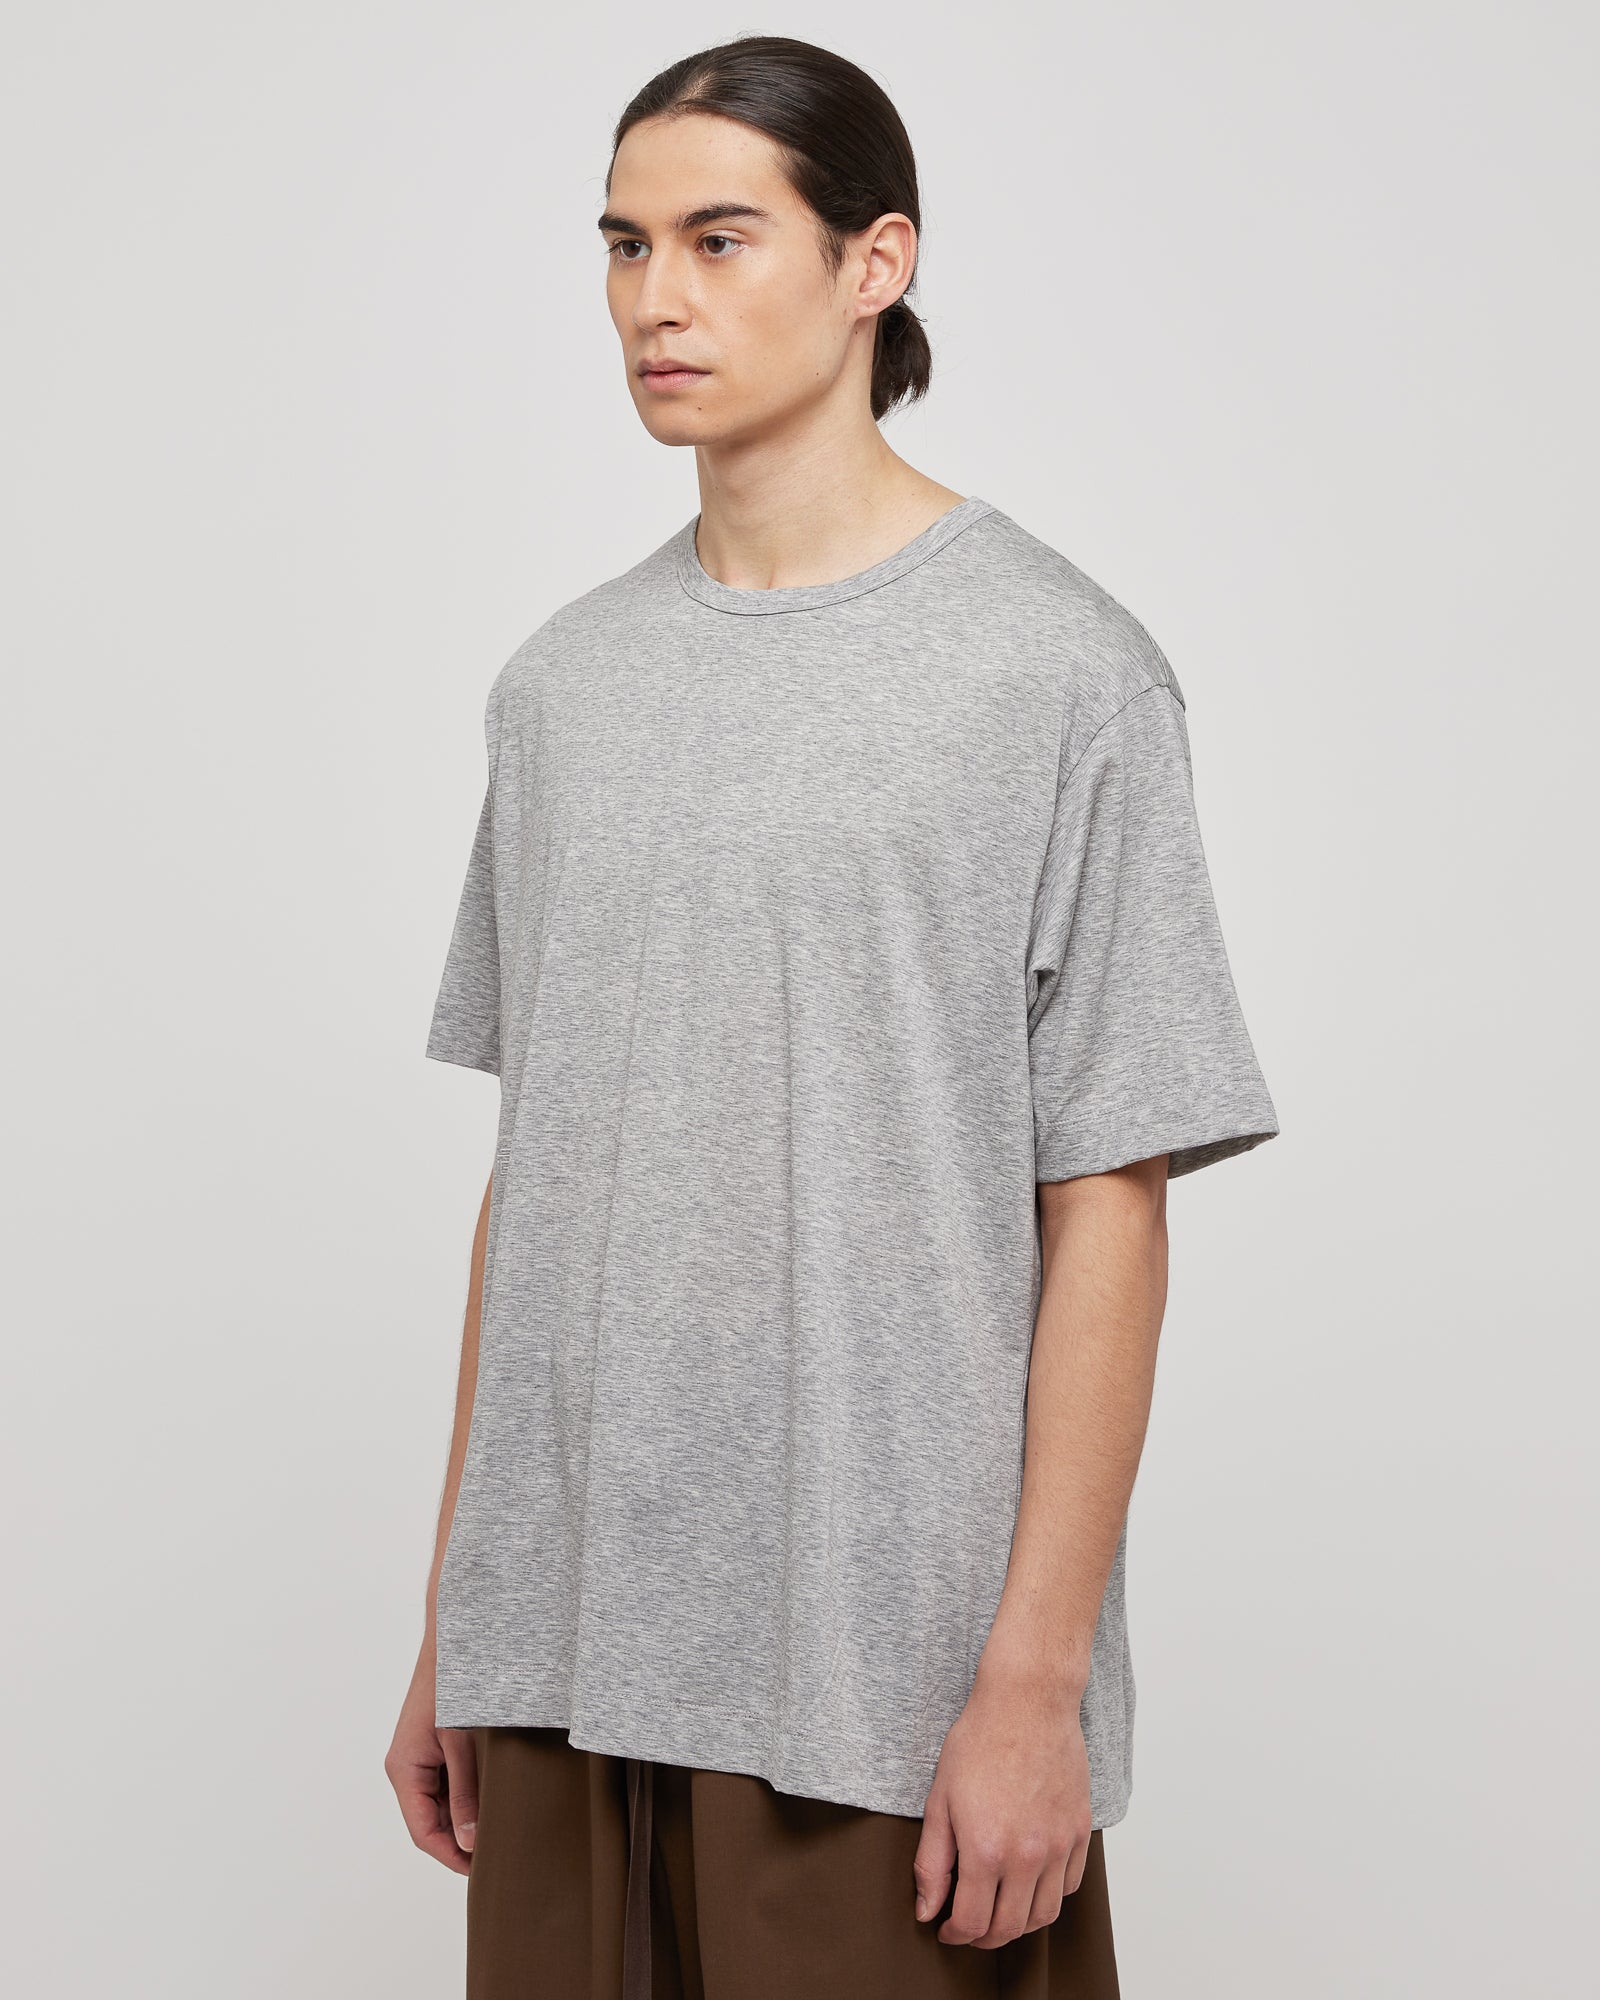 Oversized T-Shirt in Heather Gray